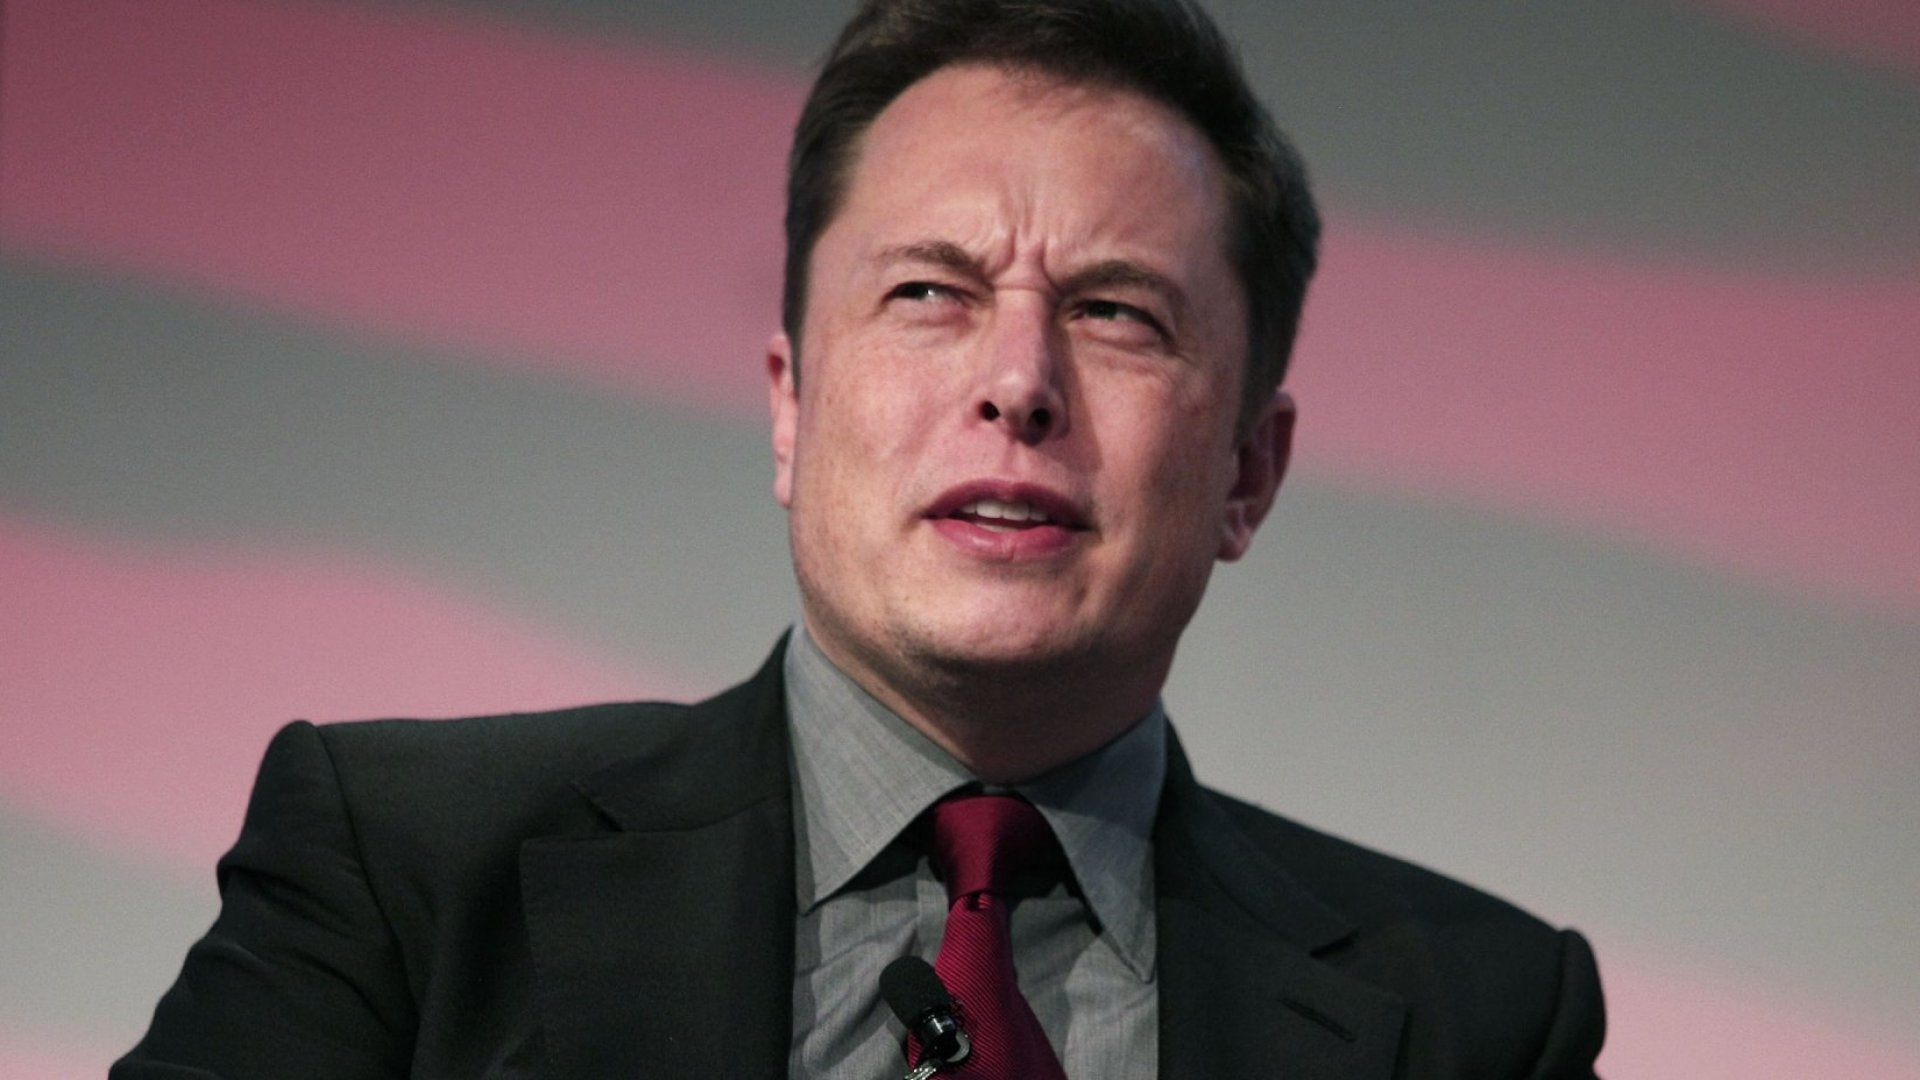 Elon Musk Says He Didn't Heartlessly Fire His Assistant After More Than 10 Years of Service